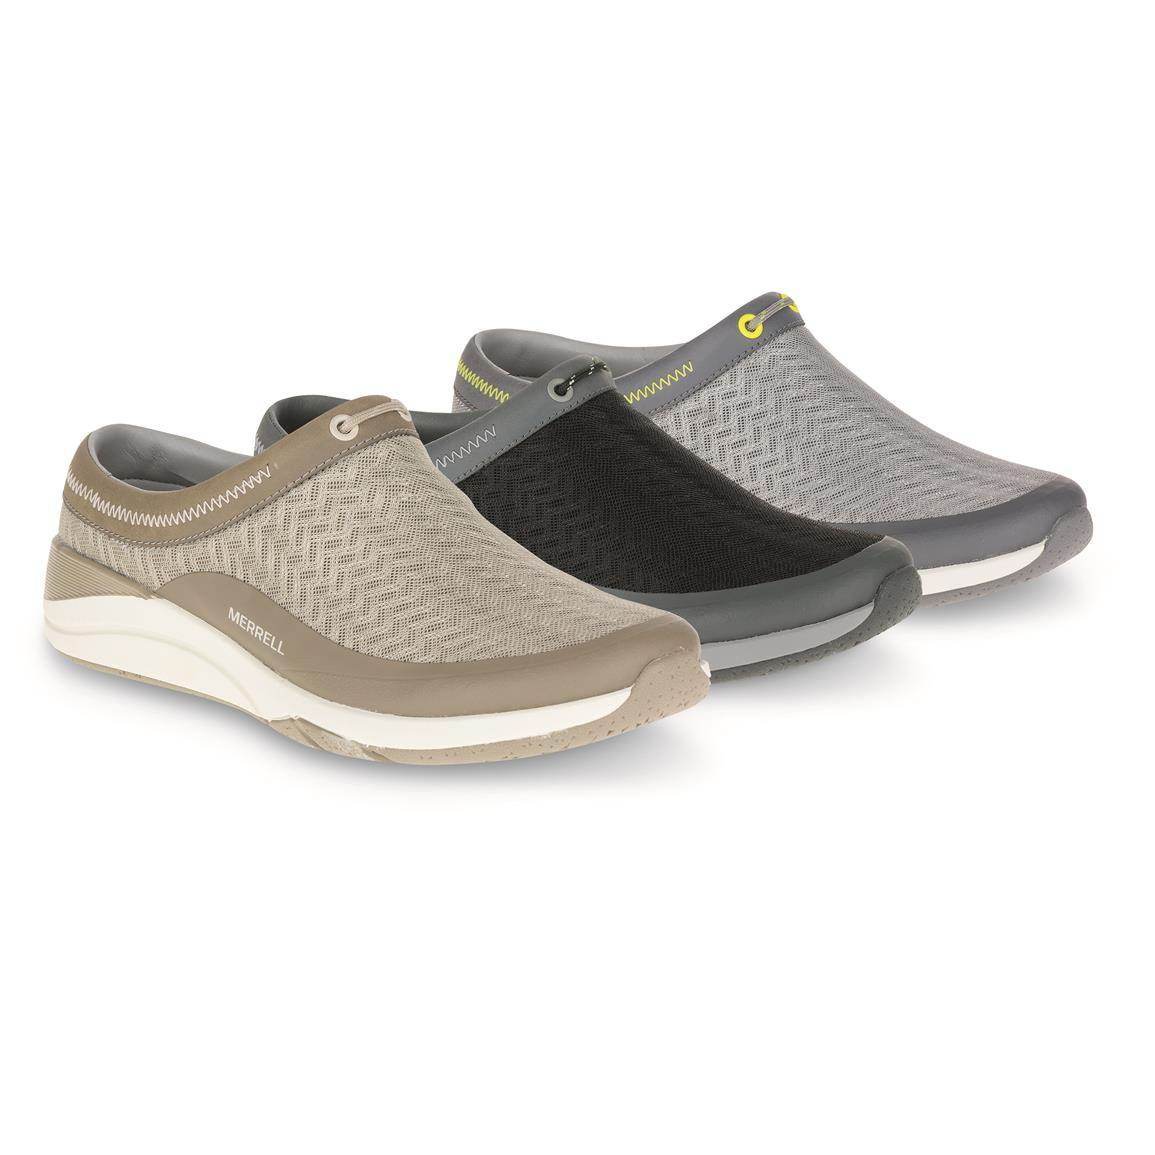 Merrell Applaud Women's Mesh Slide Shoes